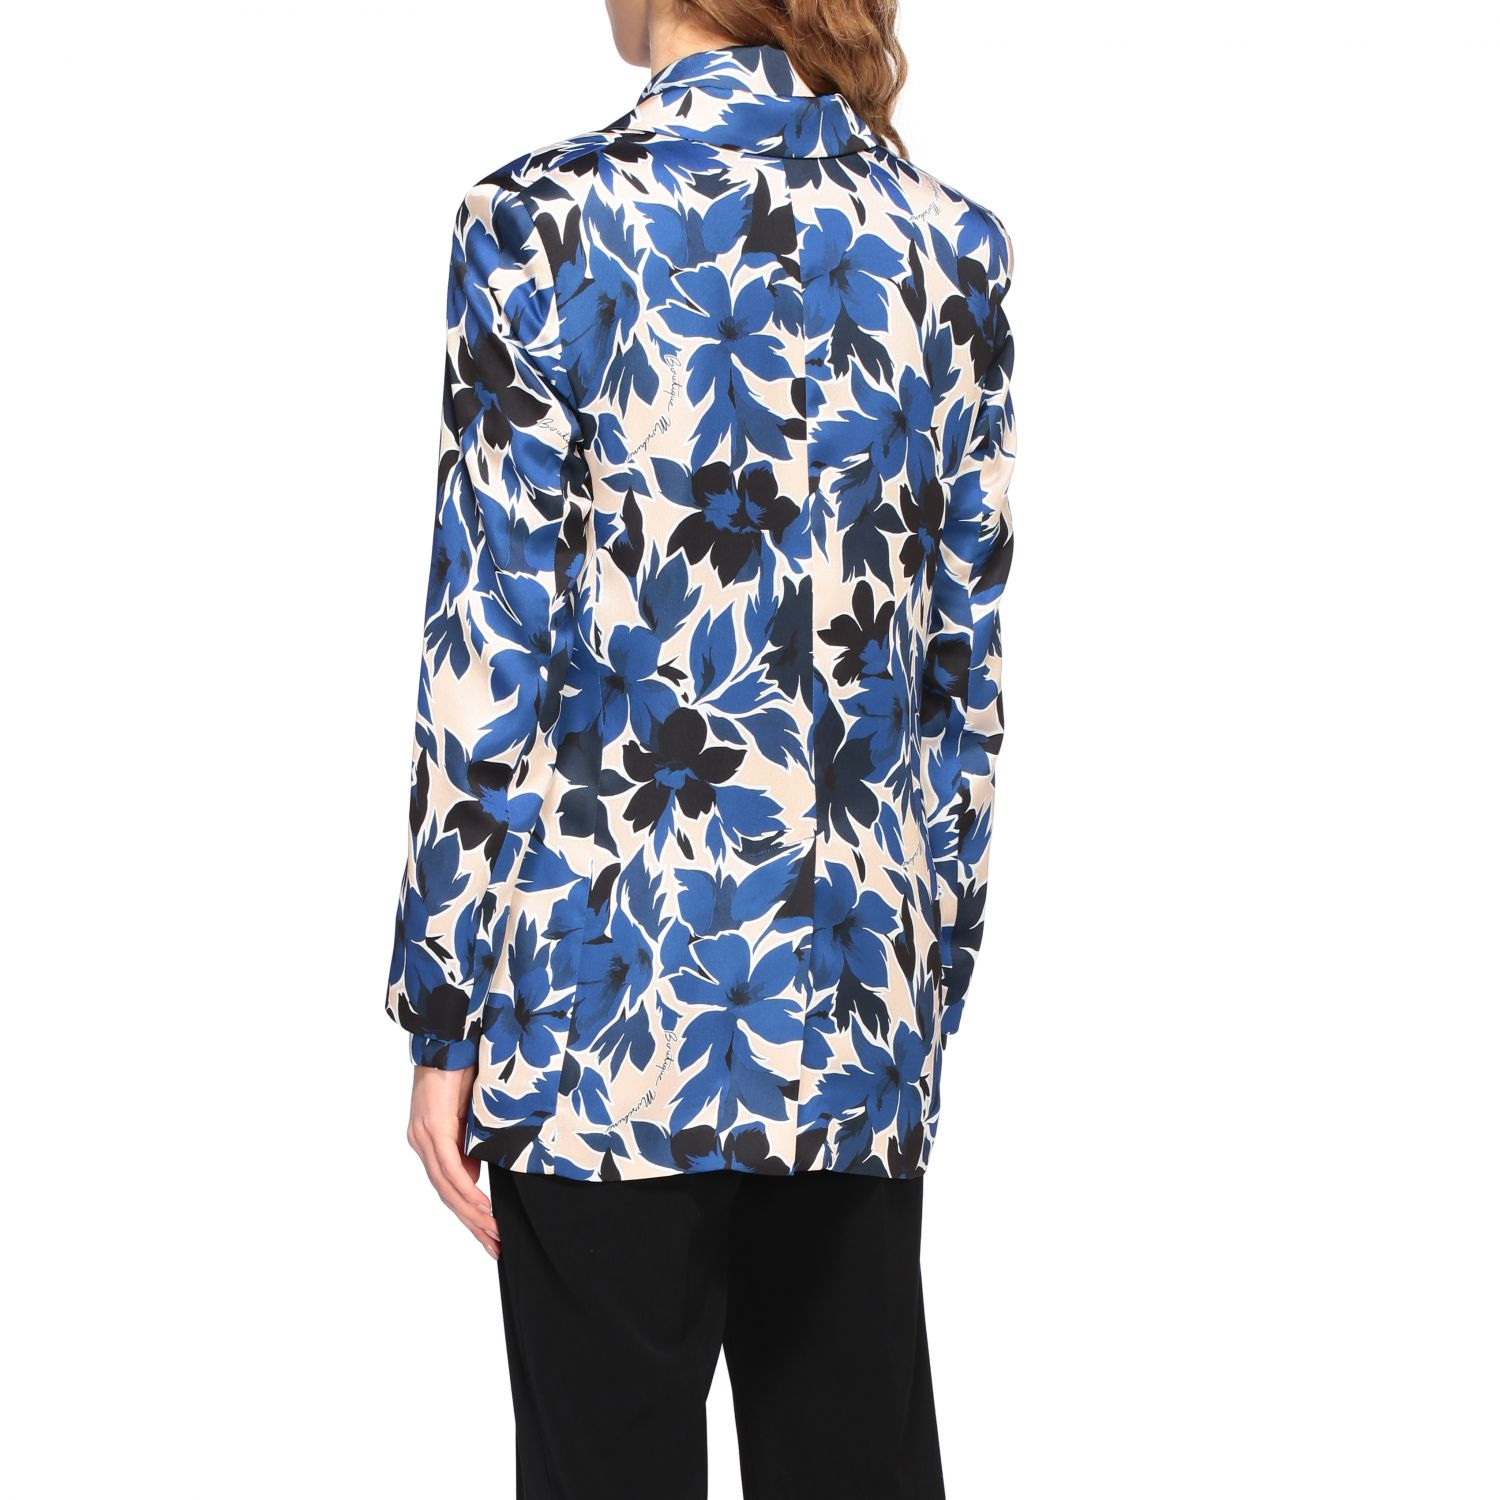 Blazer Boutique Moschino: Blazer women Boutique Moschino blue 3